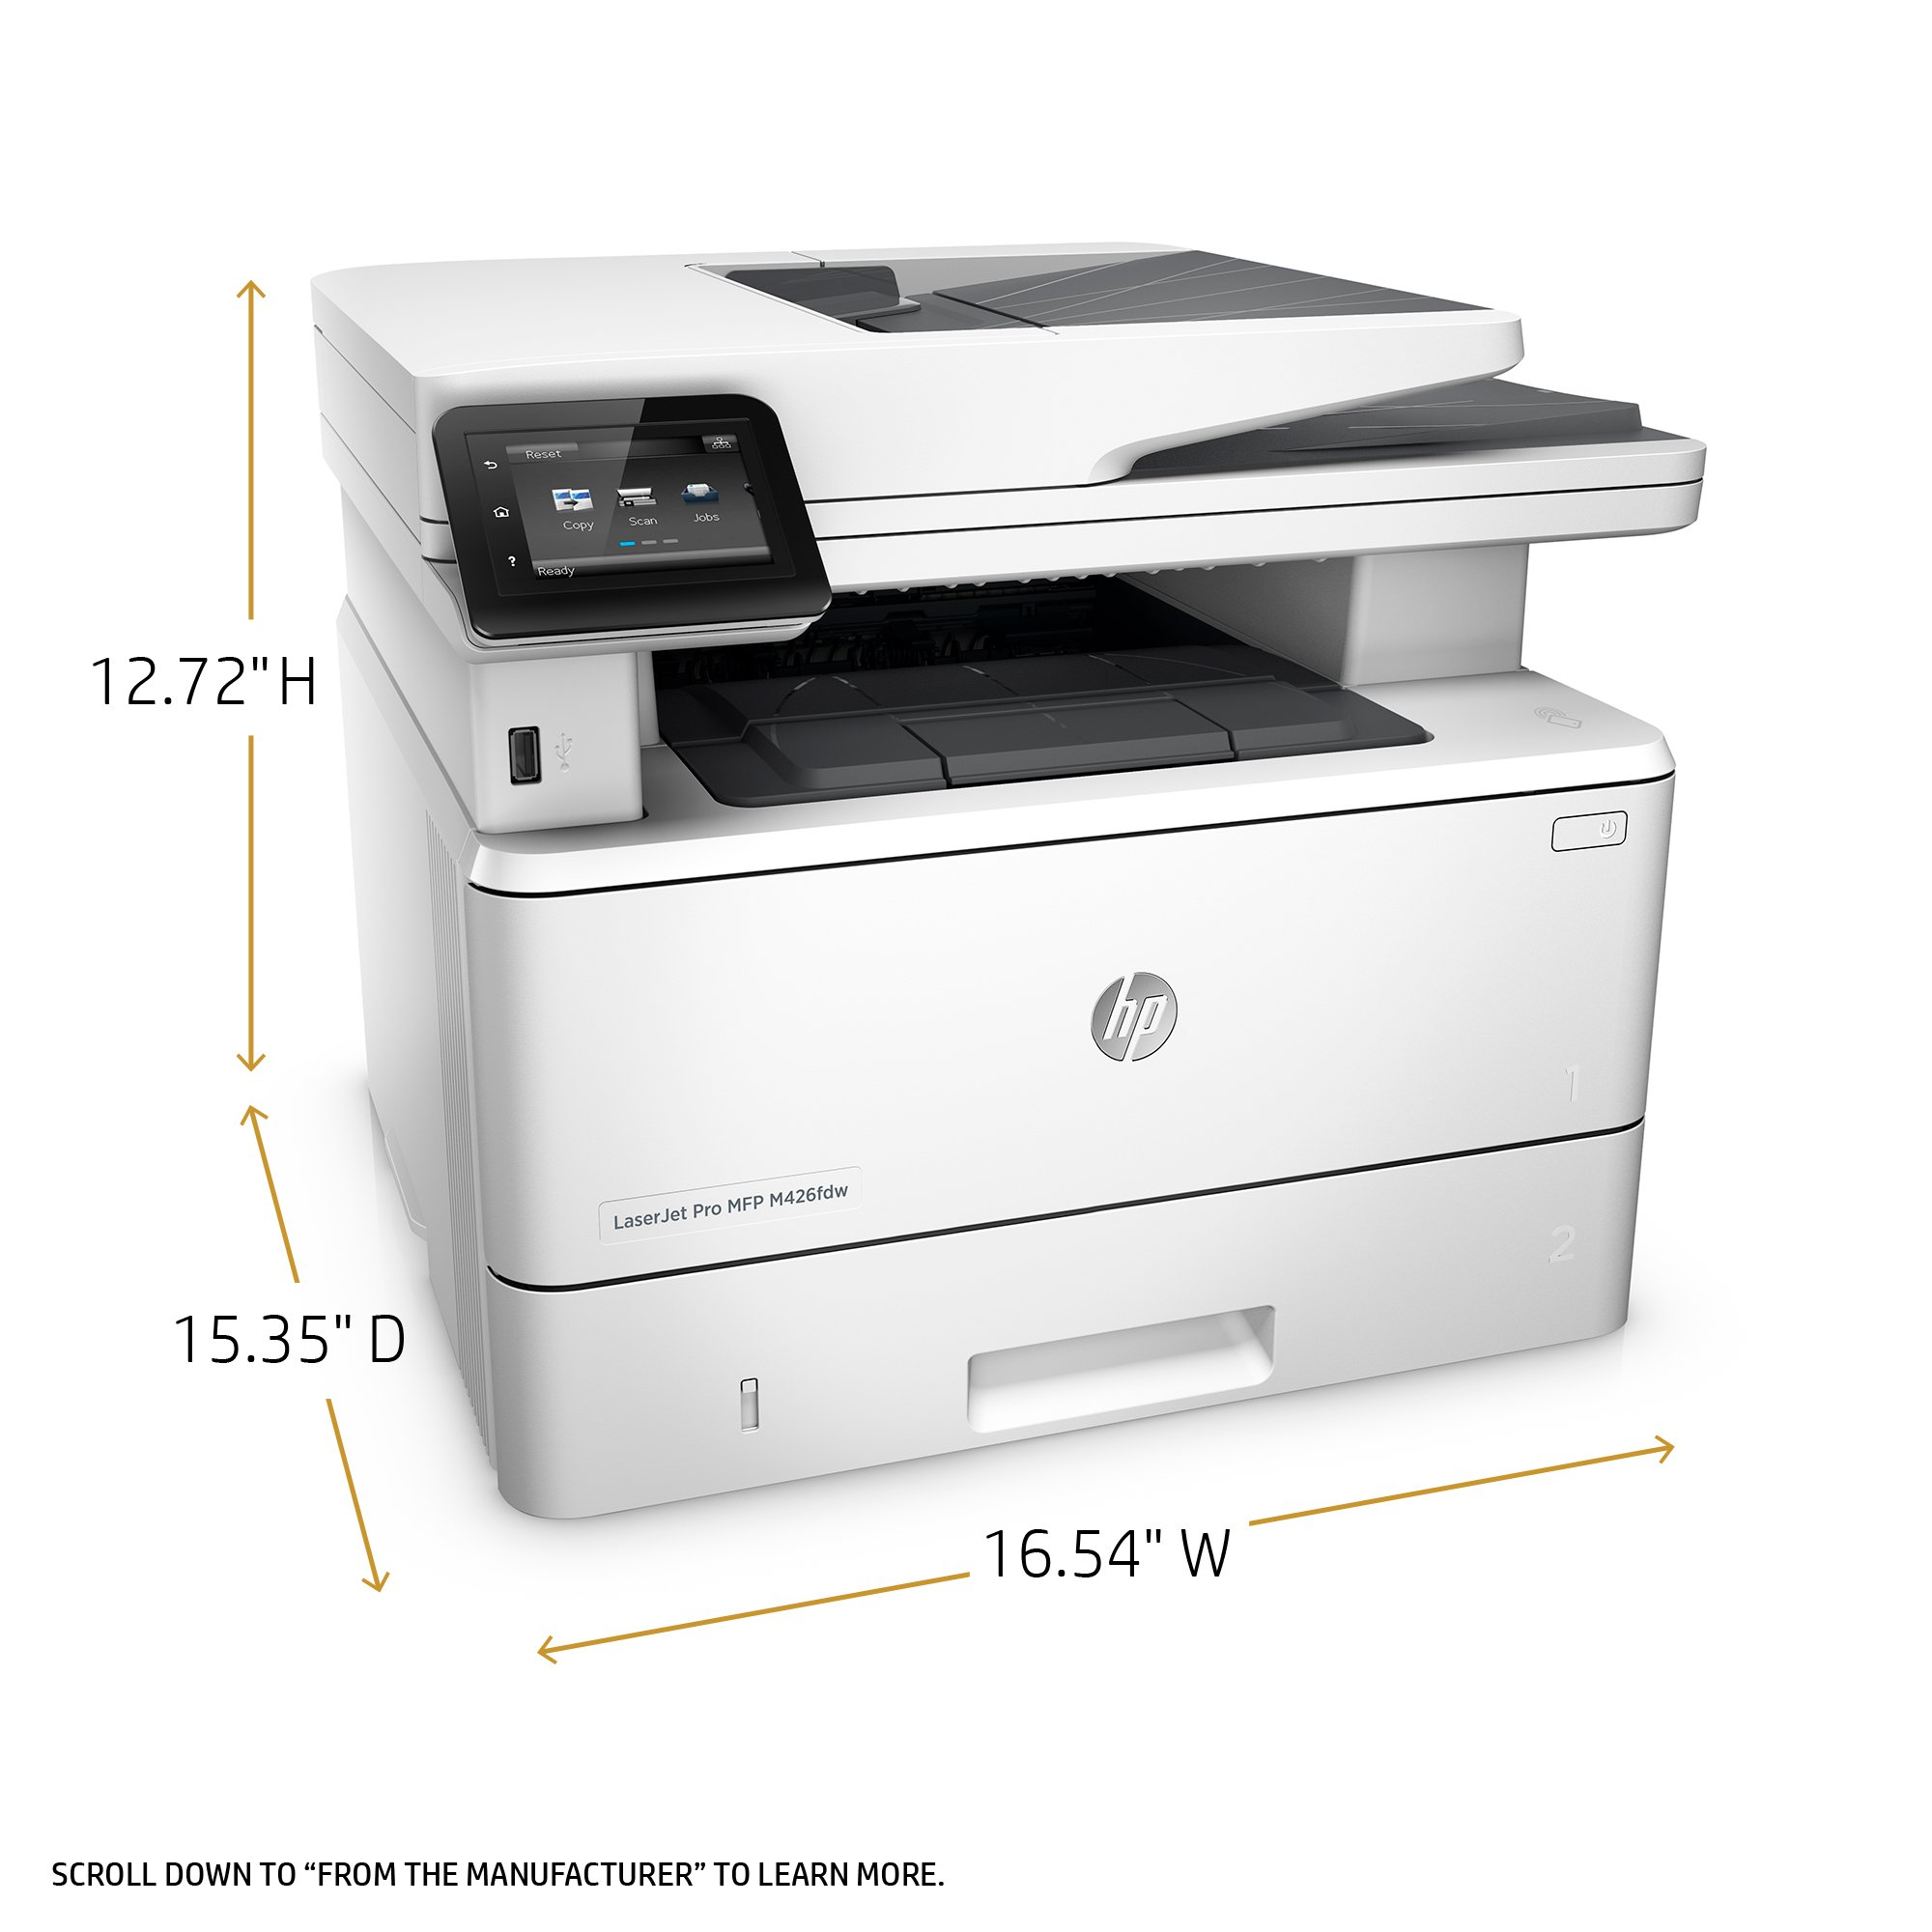 HP LaserJet Pro M426fdw All-in-One Wireless Laser Printer with Double-Sided Printing, Amazon Dash Replenishment ready (F6W15A) by HP (Image #2)